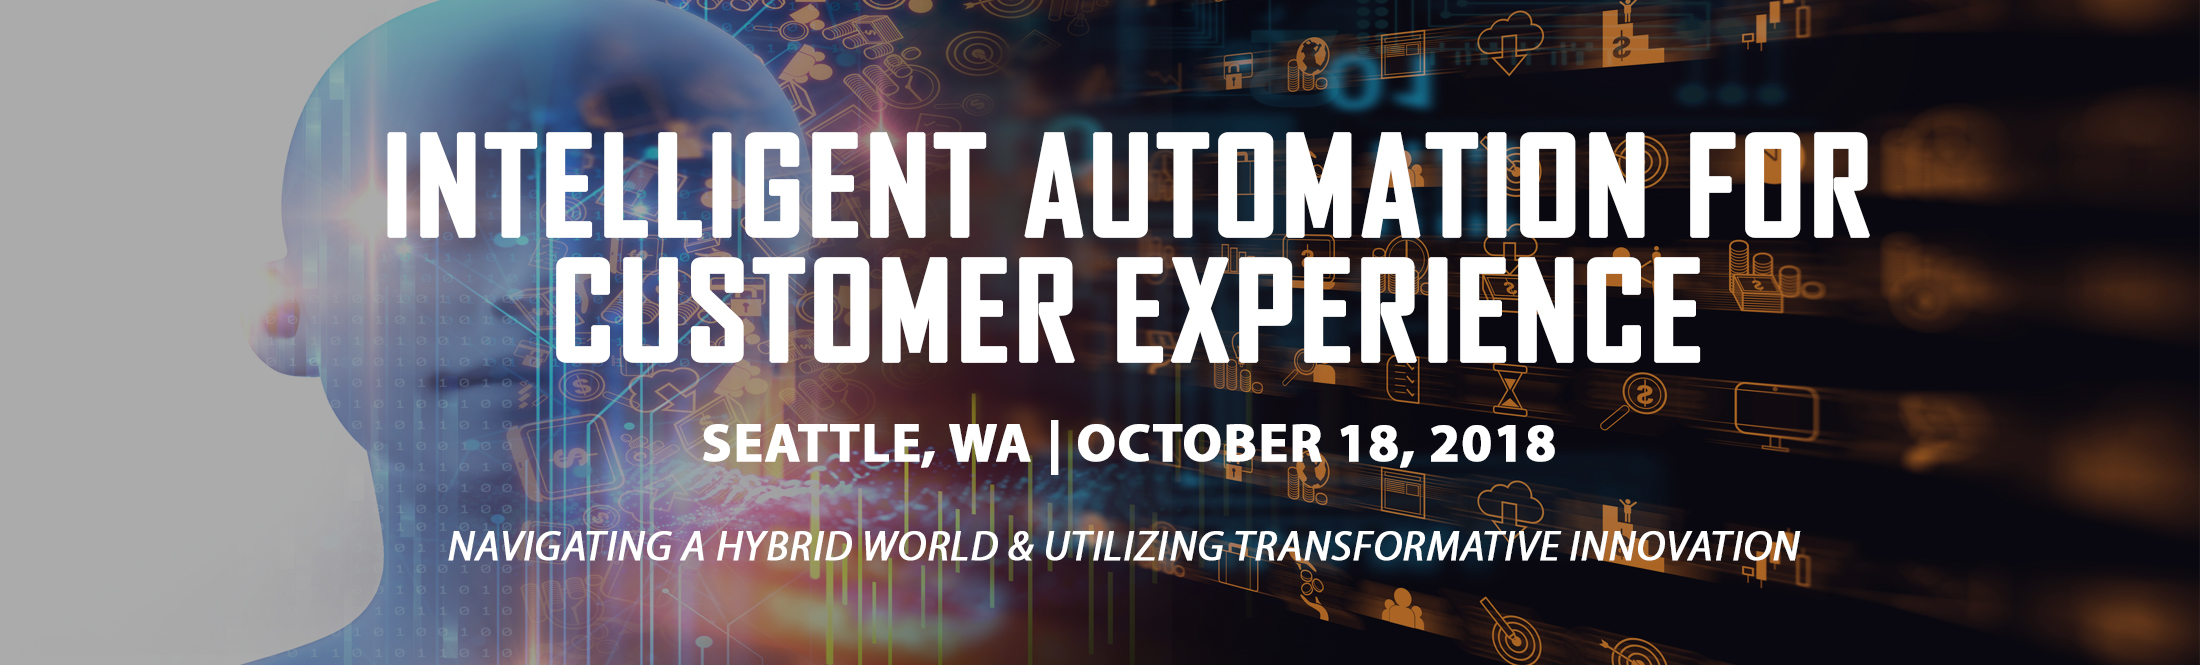 Intelligent Automation For Customer Experience - Seattle